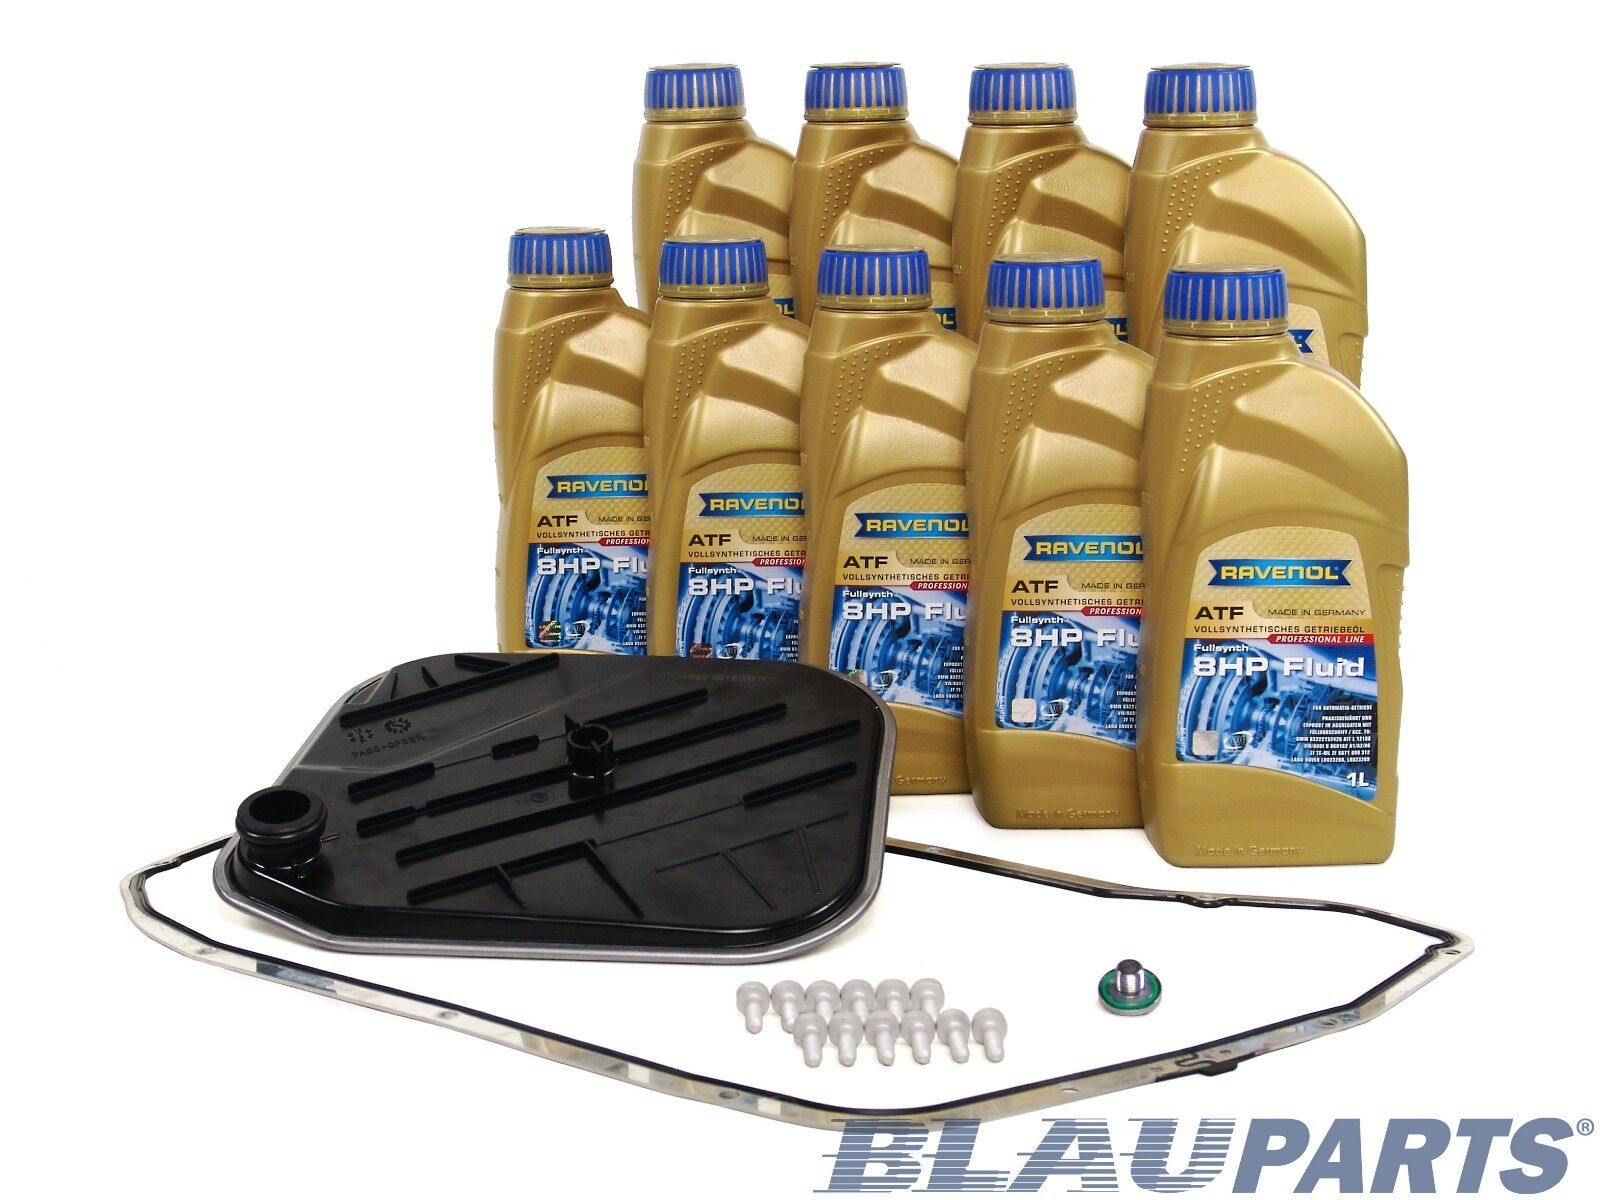 ATF Filter Change Kit - Compatible with 2012-17 Audi A7 - 8 Speed